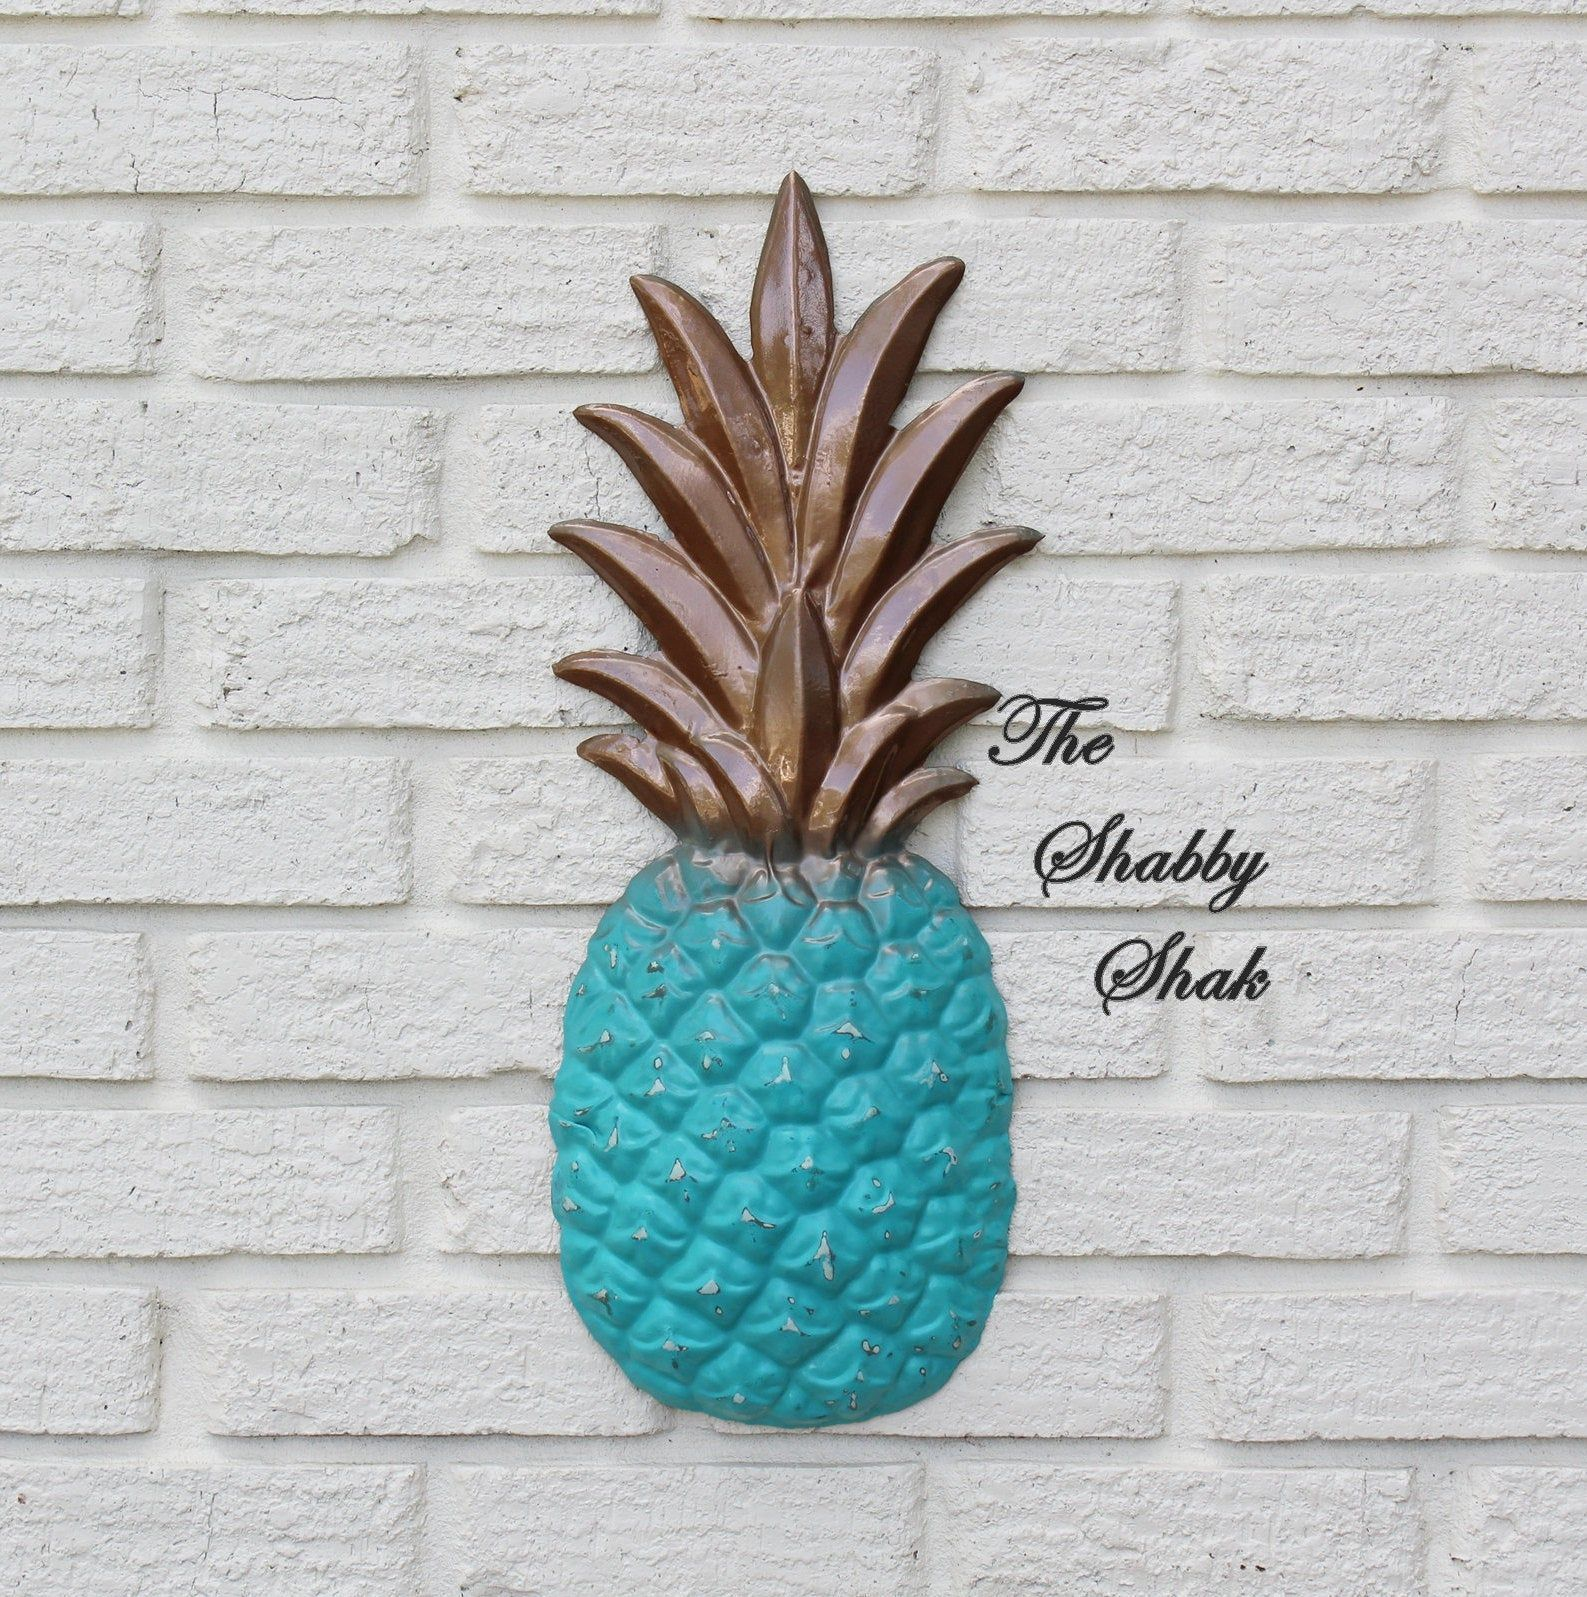 Pineapple Wall Decor ~Large Metal Pineapple Wall Decor~Pineapple Kitchen Decor~P...#decor #decorp #decorpineapple #kitchen #large #metal #pineapple #wall